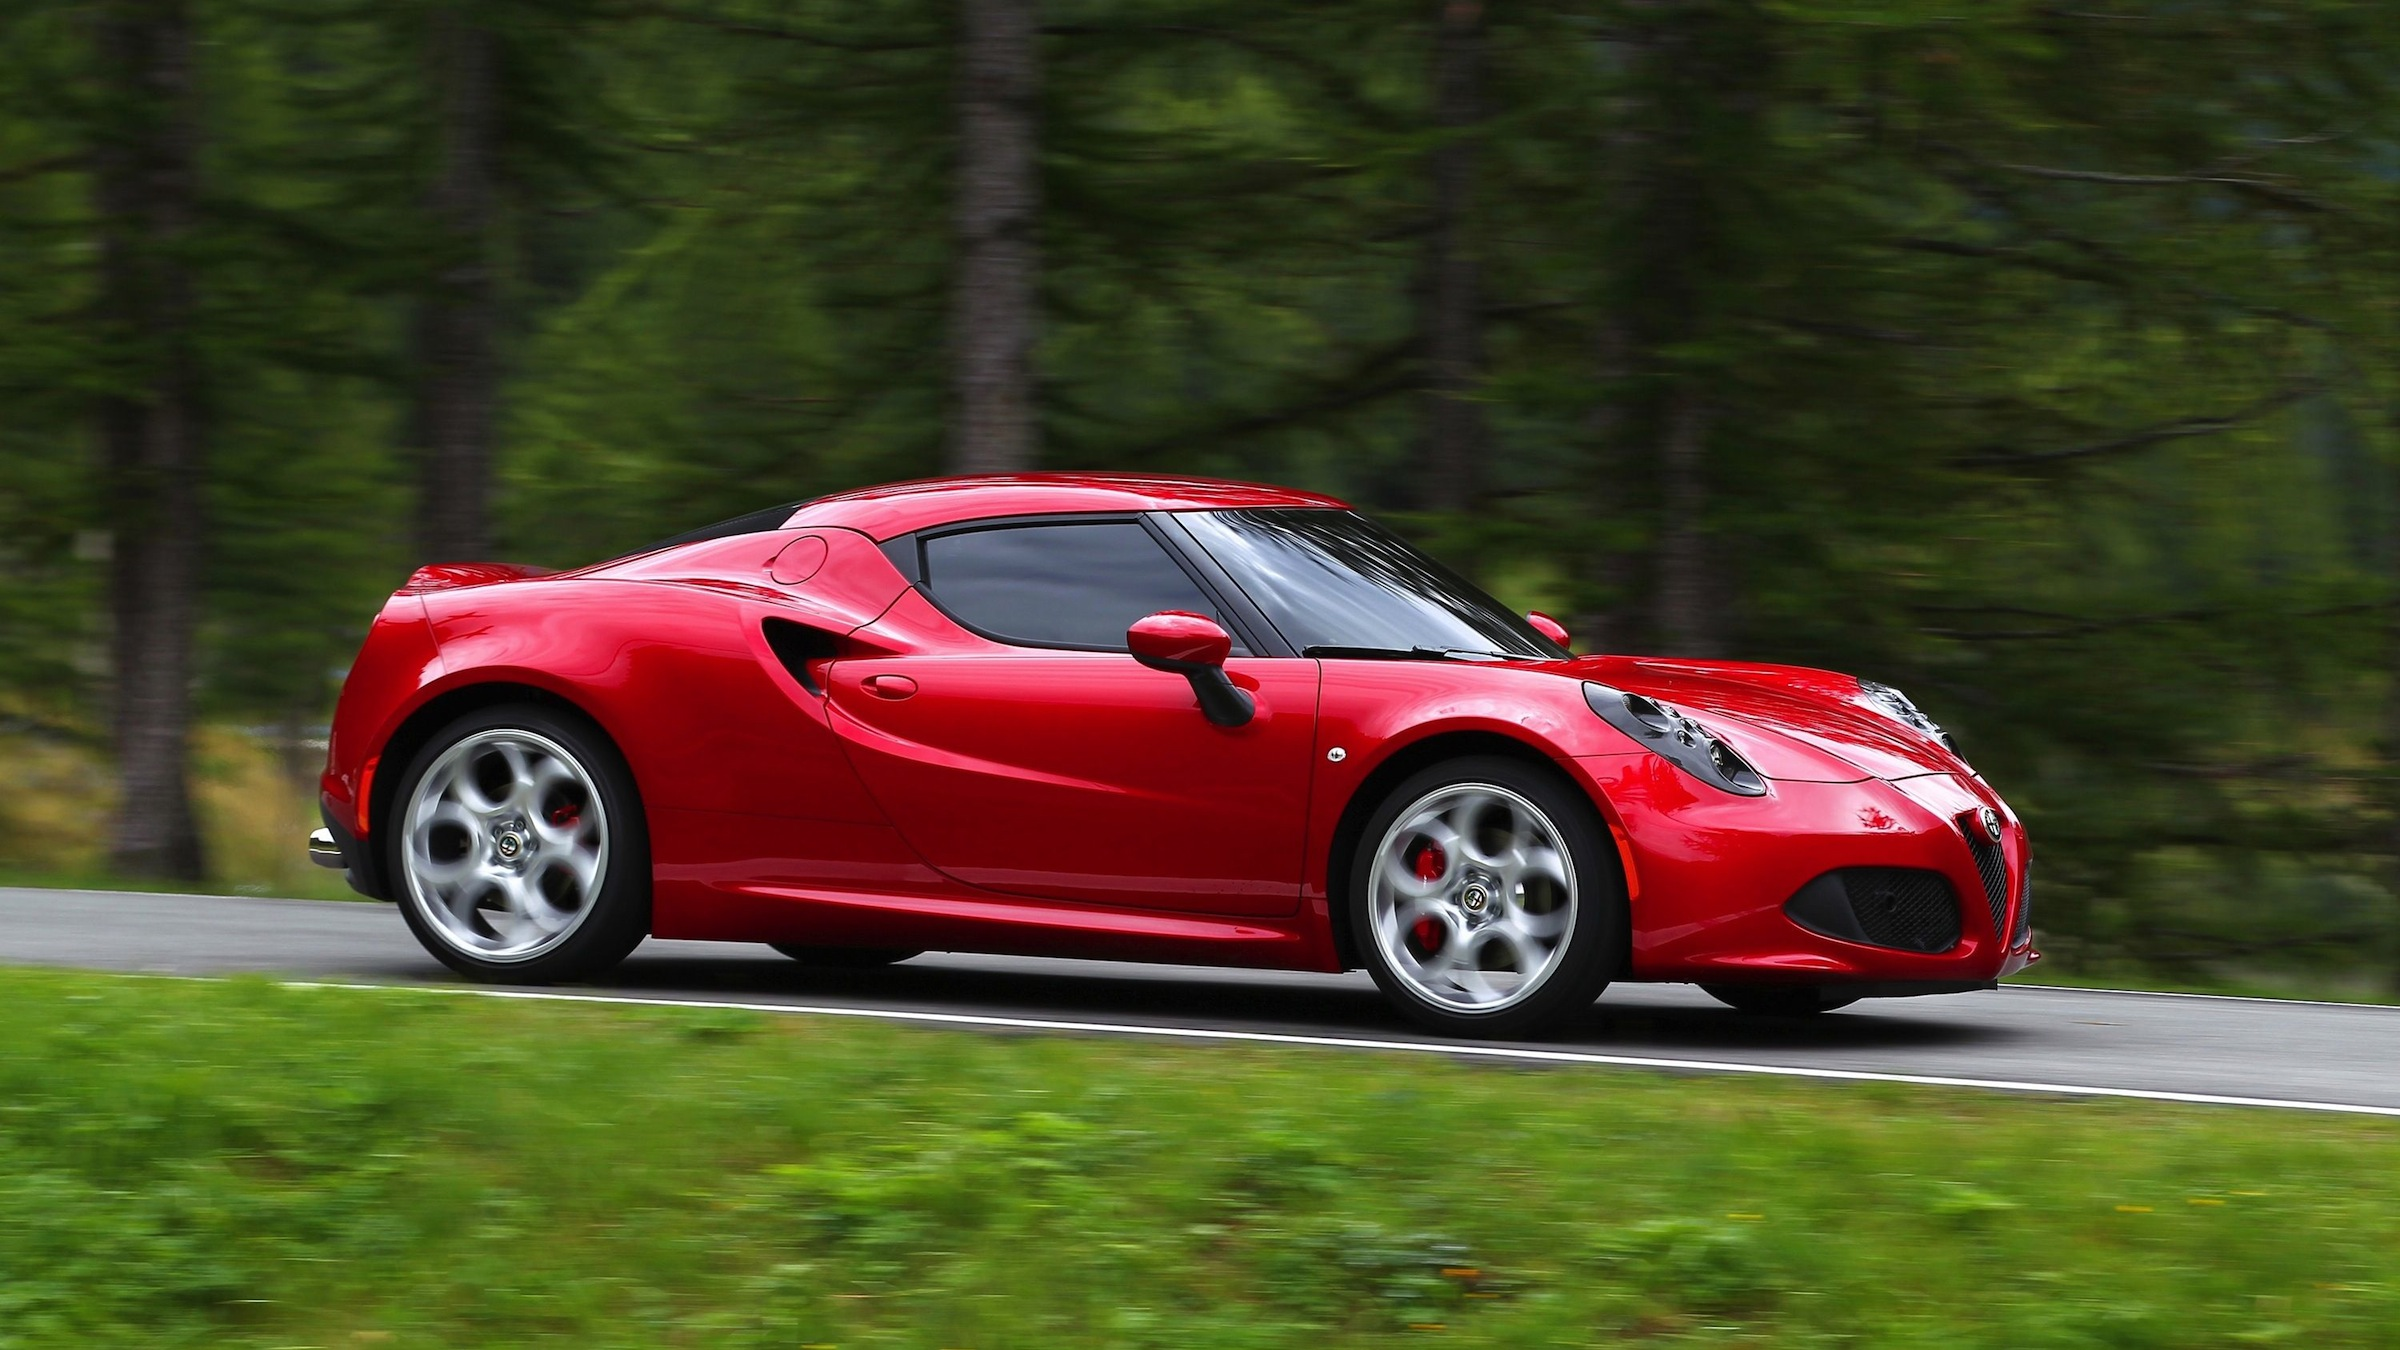 Fiat S New Turbo Ed Alfa Romeo 4c Sports Car Is Leaving Chevy And Porsche An Opening Quartz